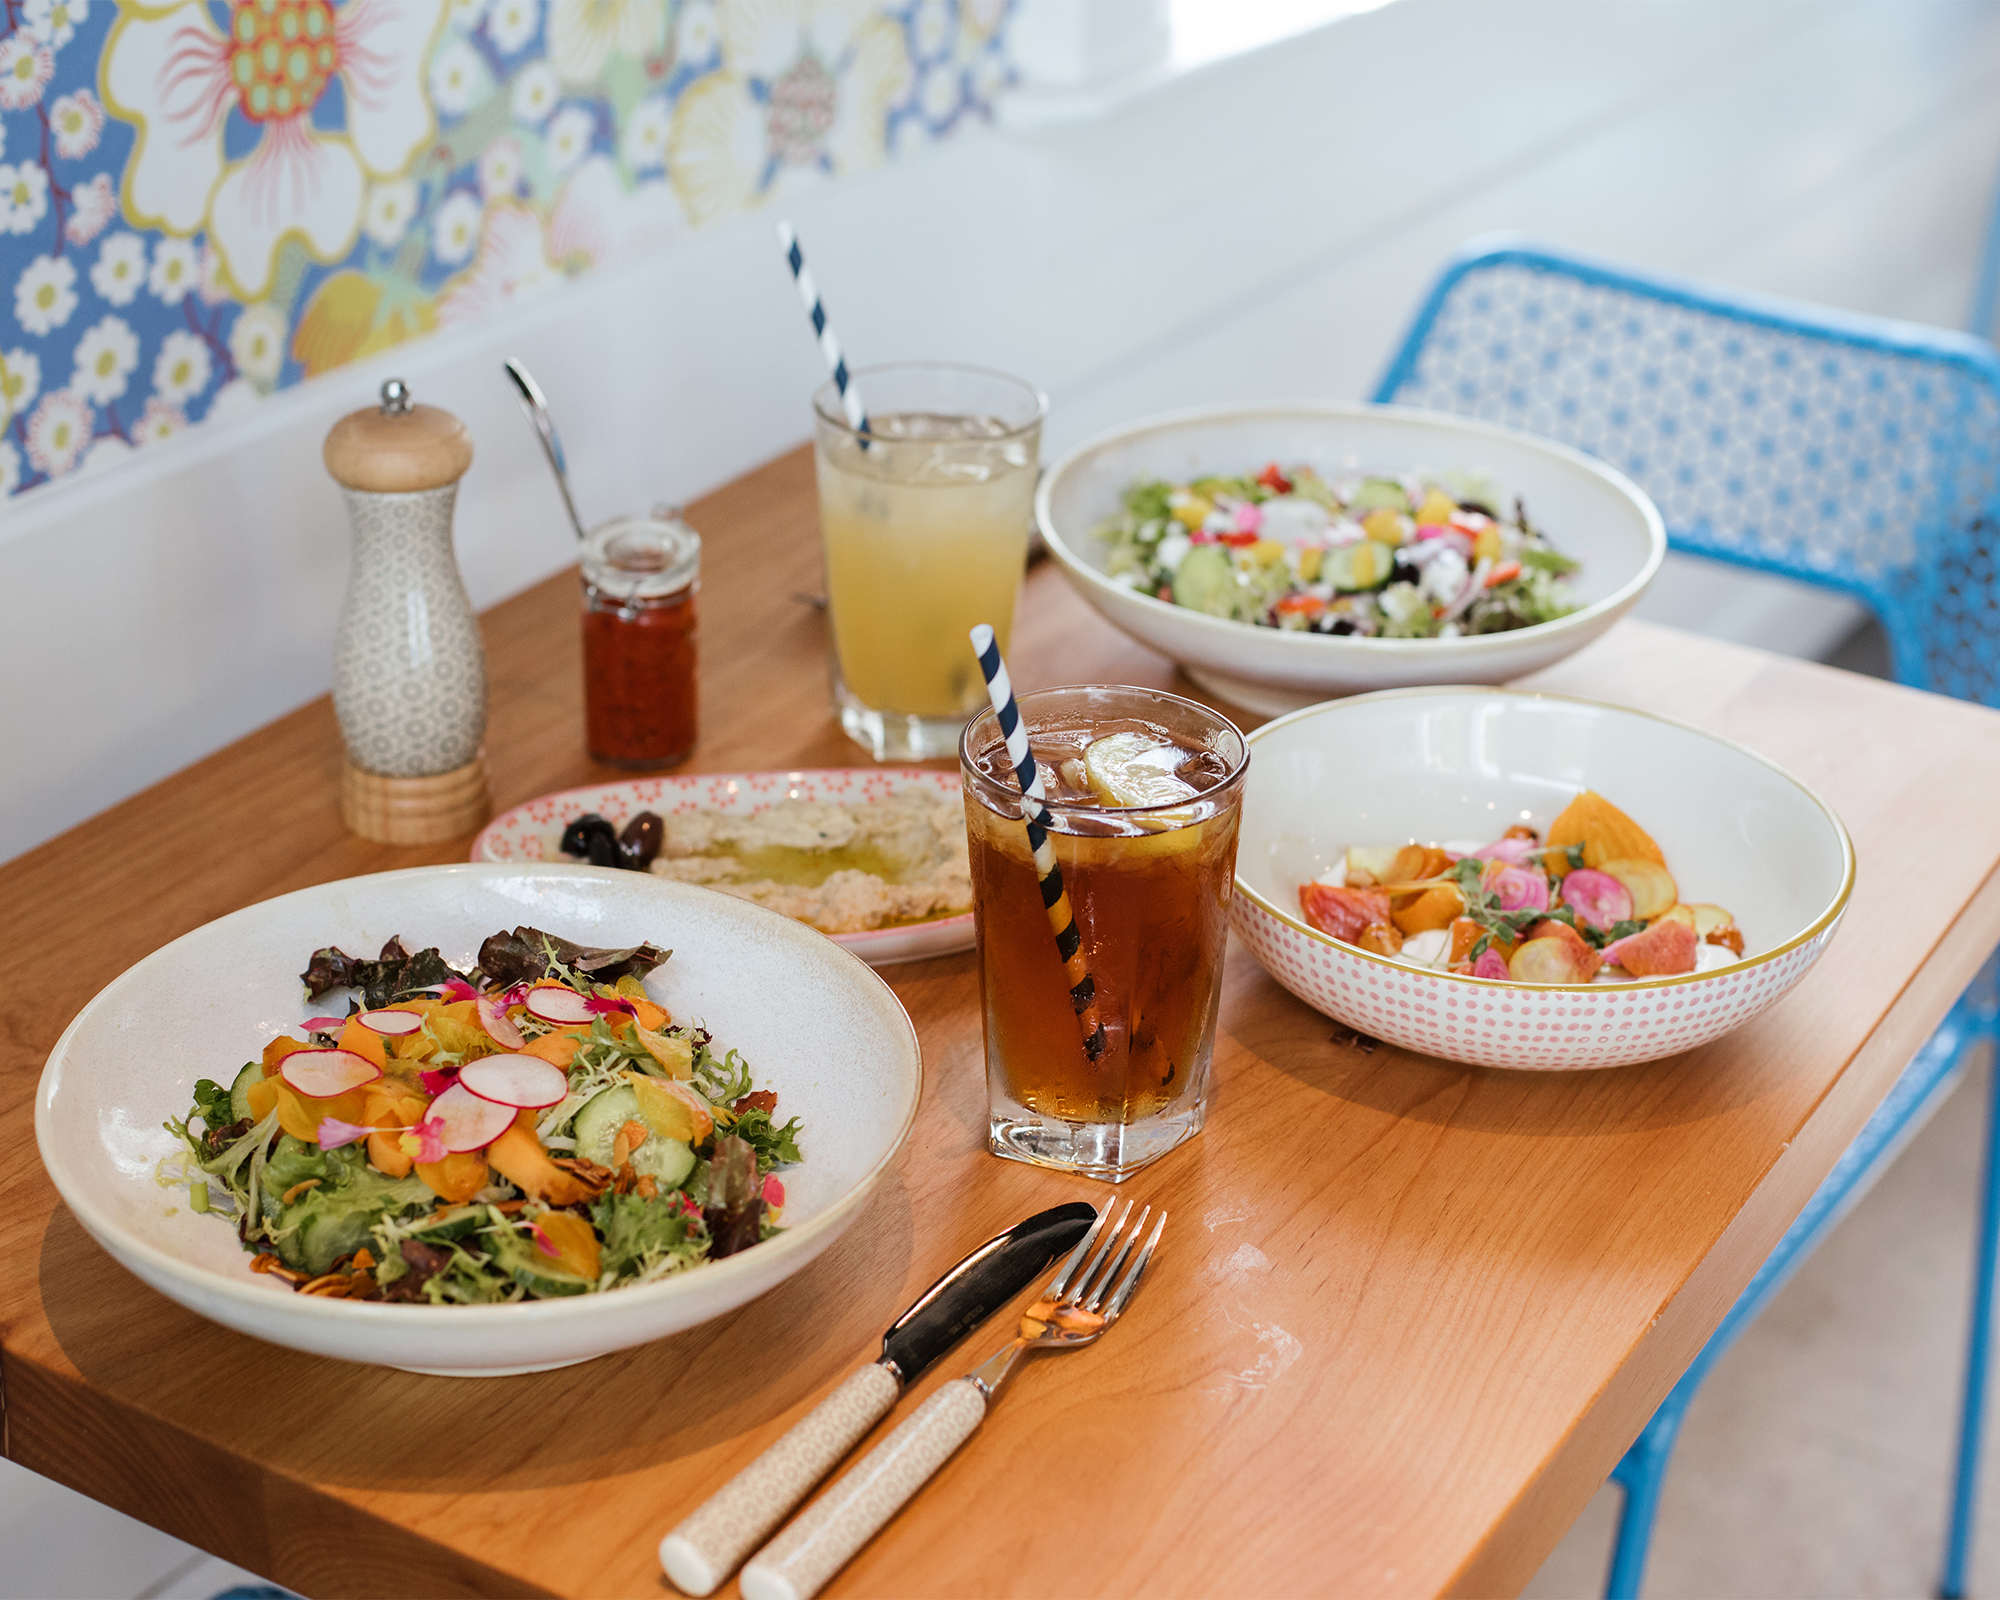 Meal at Stockhome restaurant in Petaluma. Courtesy photo, Elise Aileen Photography.